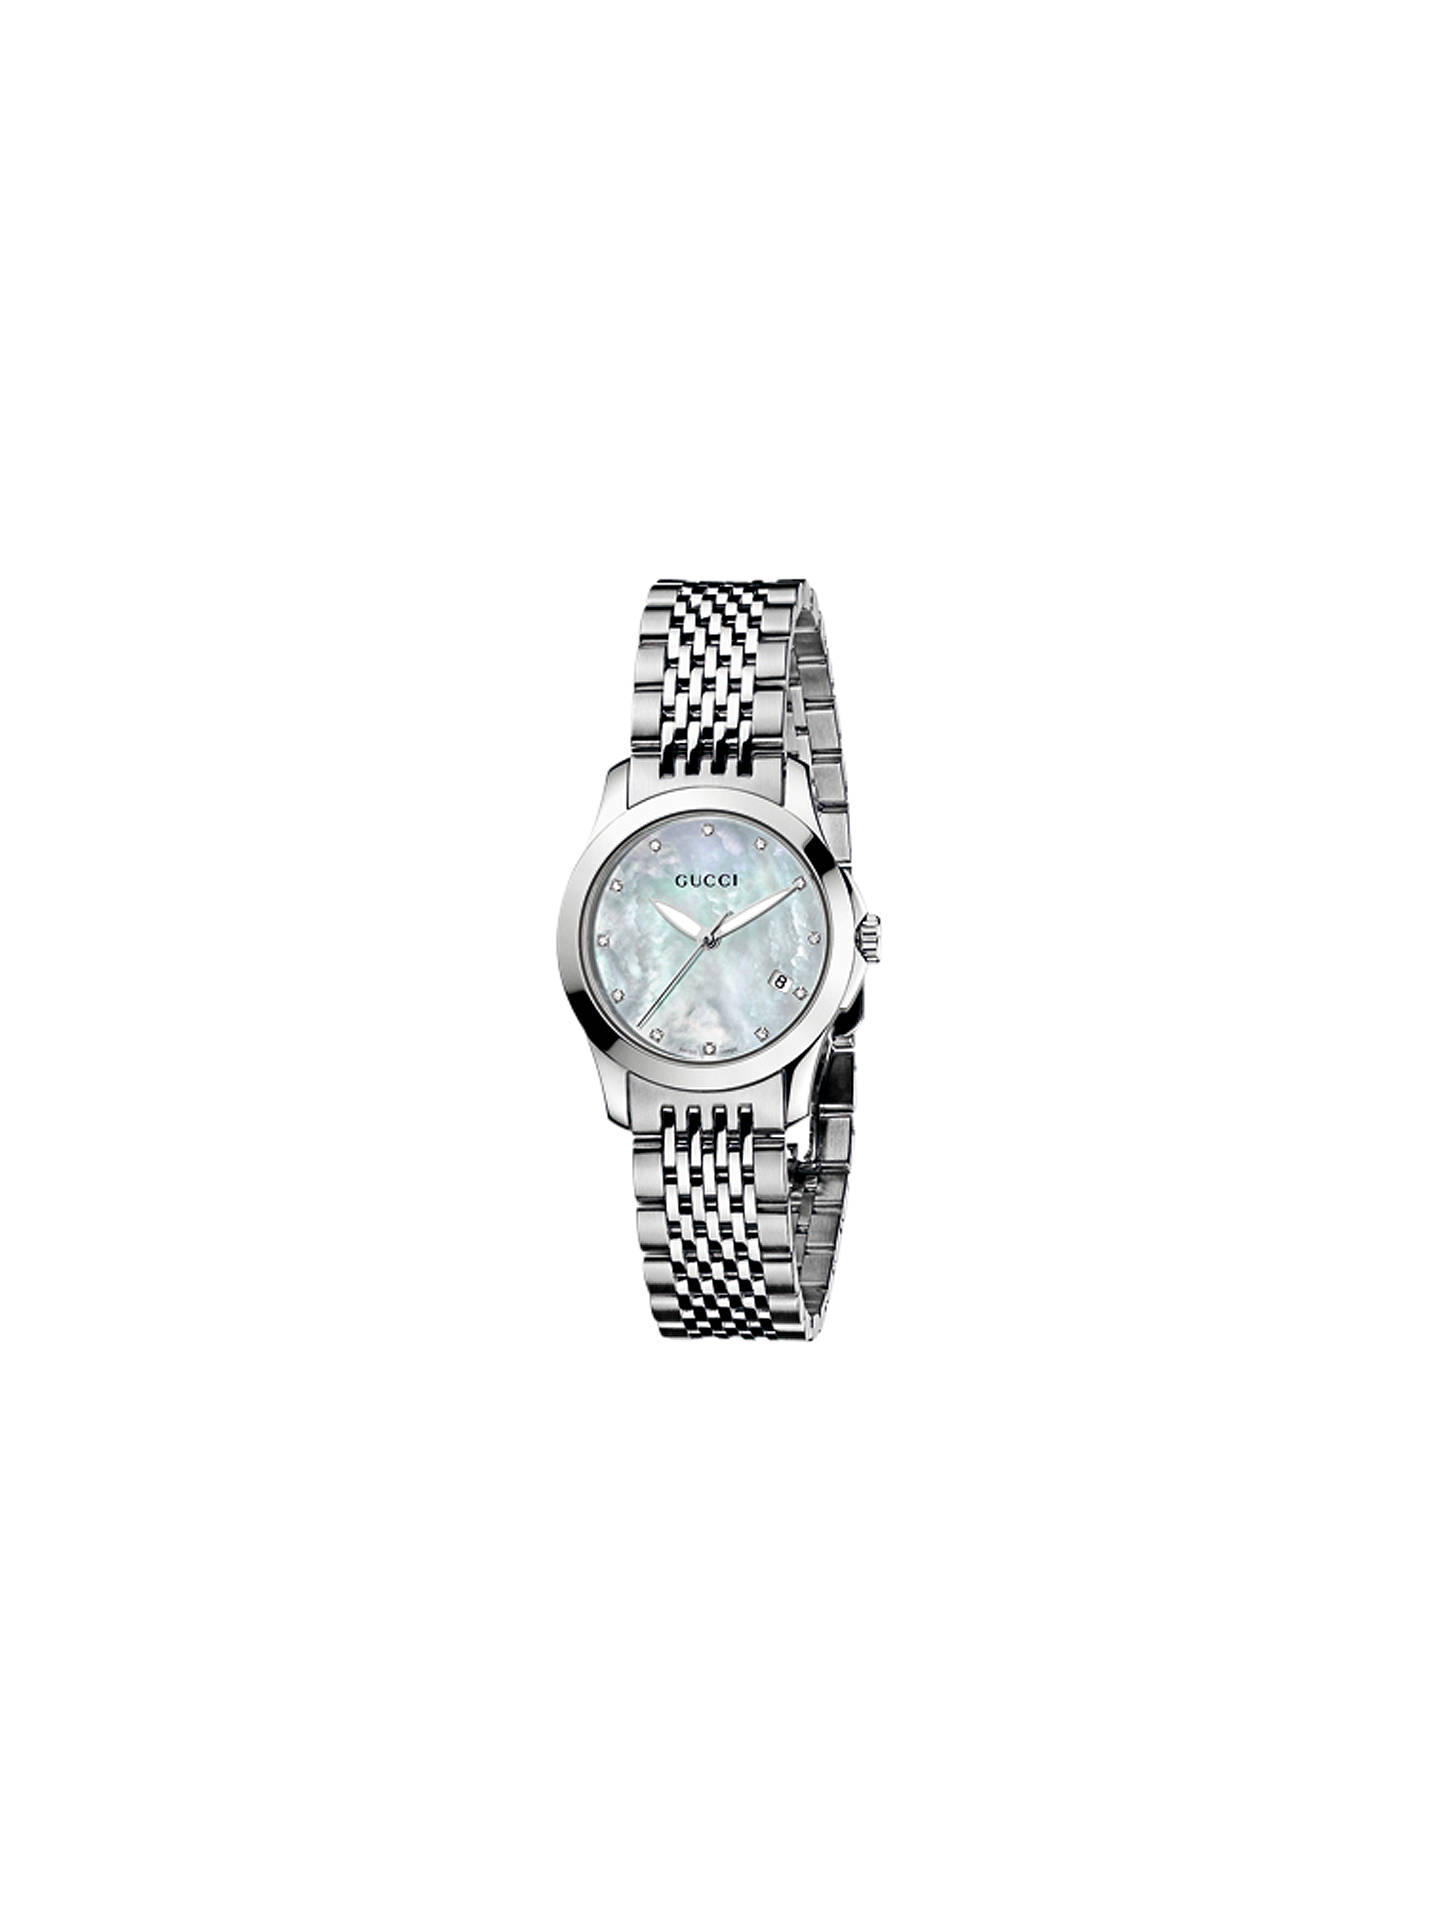 3f889f8a2e3 Gucci Women s G-Timeless Mother of Pearl Dial Stainless Steel Bracelet  Strap Watch